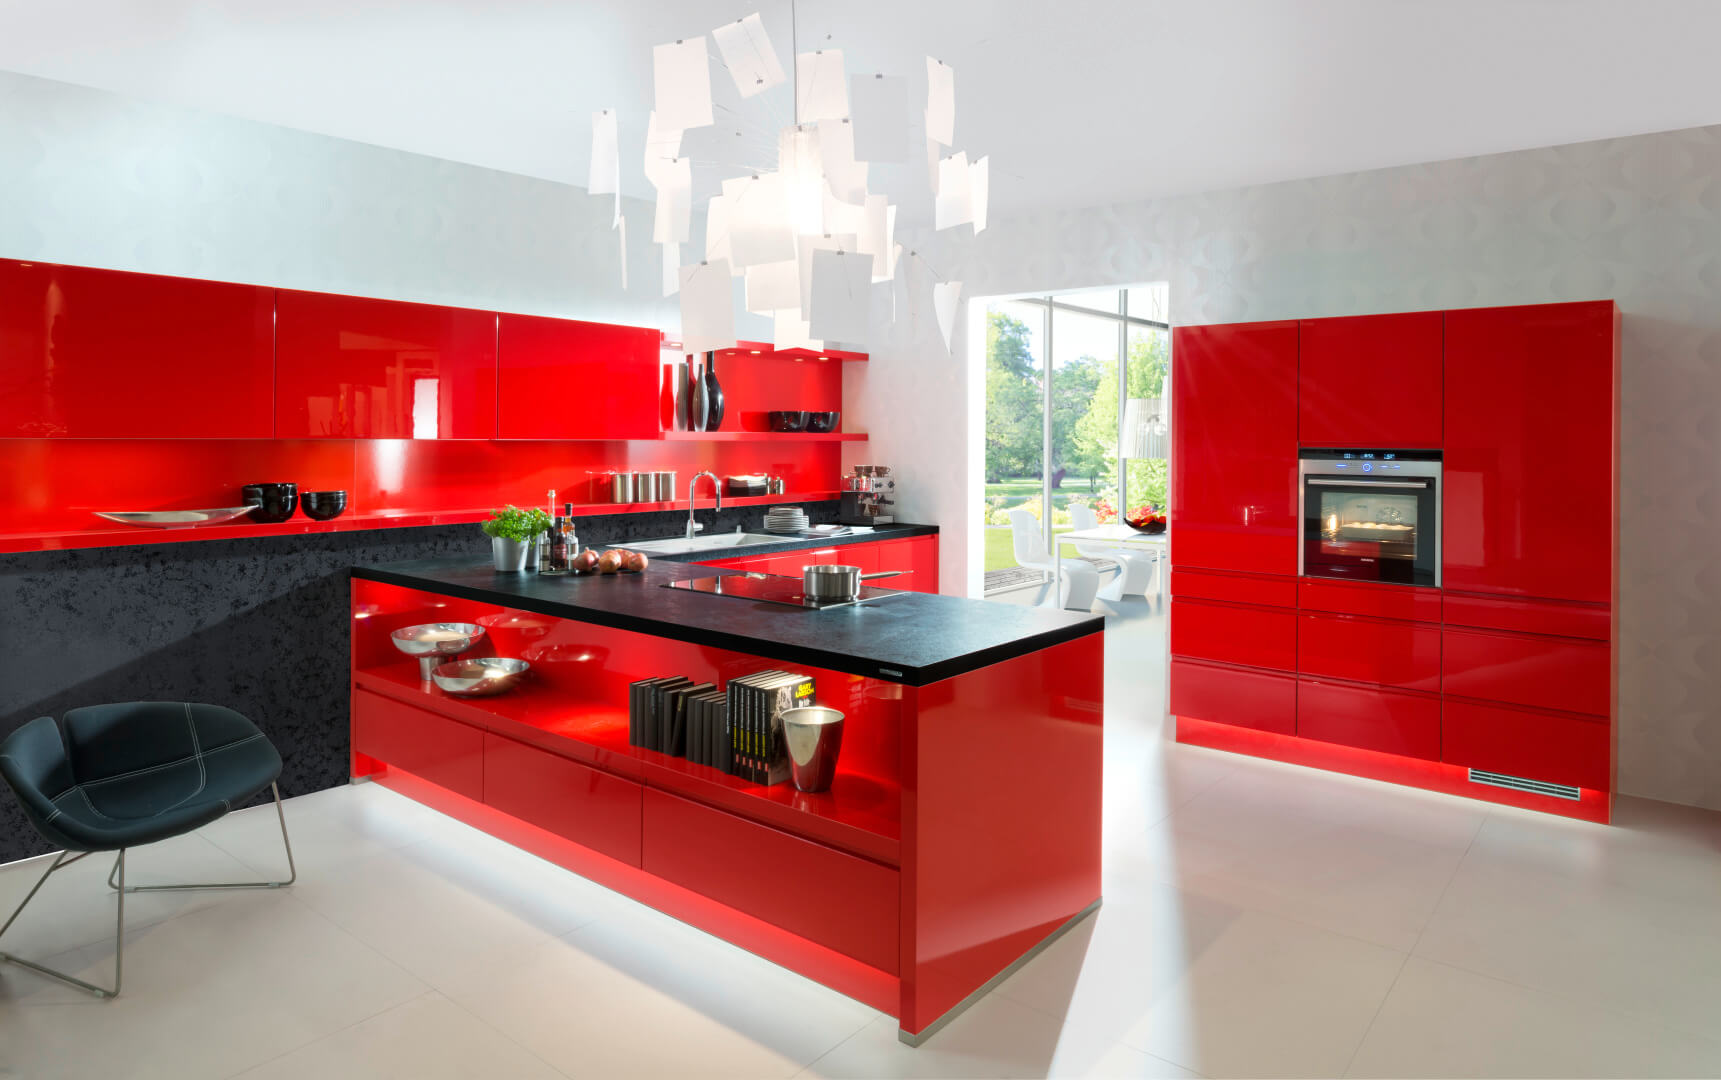 Nolte-Kitchens-Alpha-Lack-Gallery1